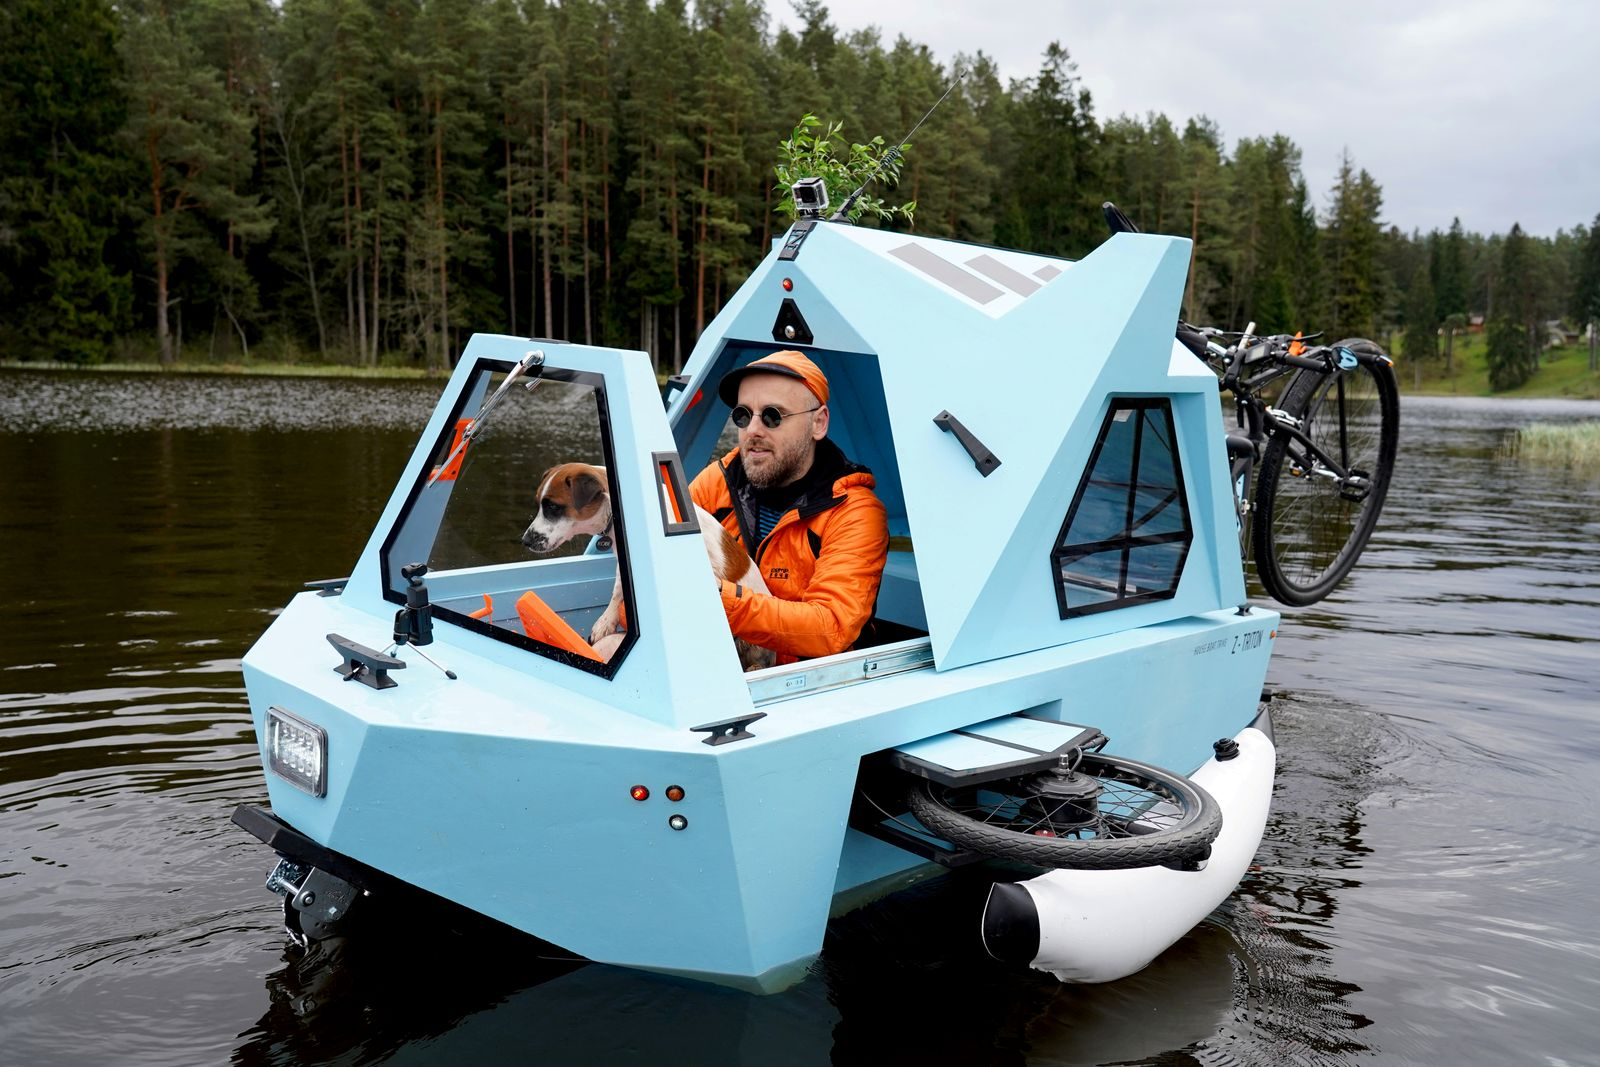 Designer Lauzis boats Z-Triton, a tricycle, a boat and a little house in one, in Smiltene